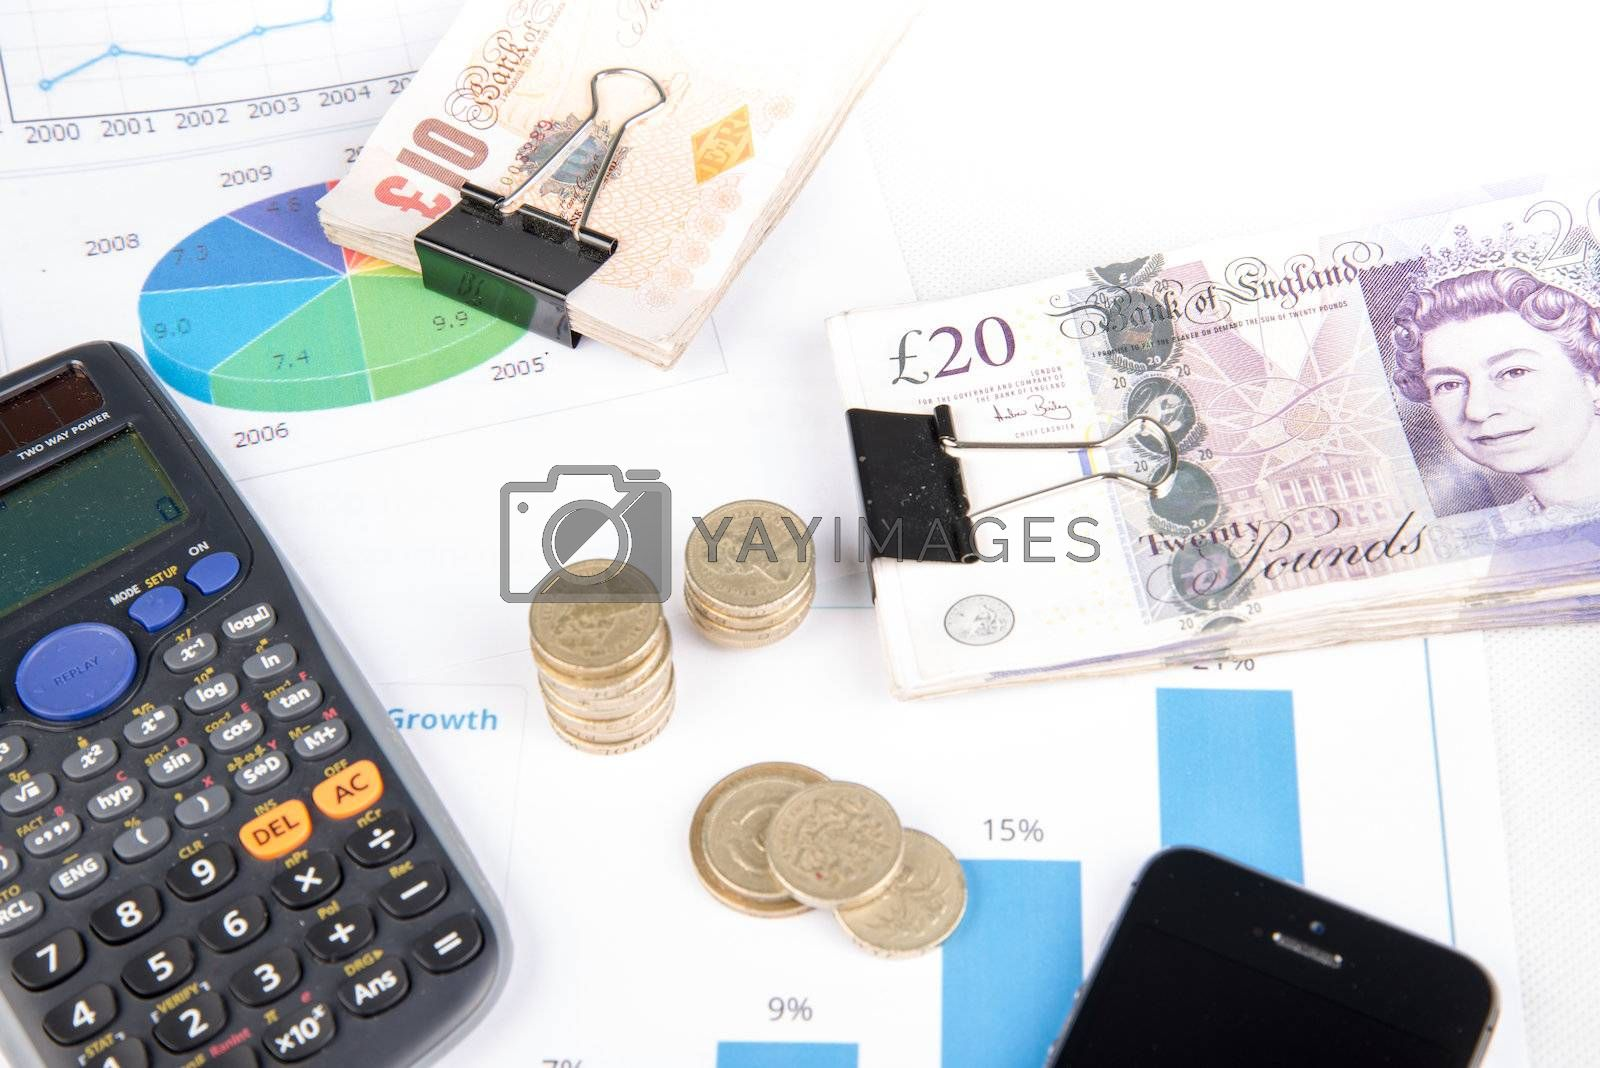 British pound sterling coins and bank notes on desk with keyboard and financial chart